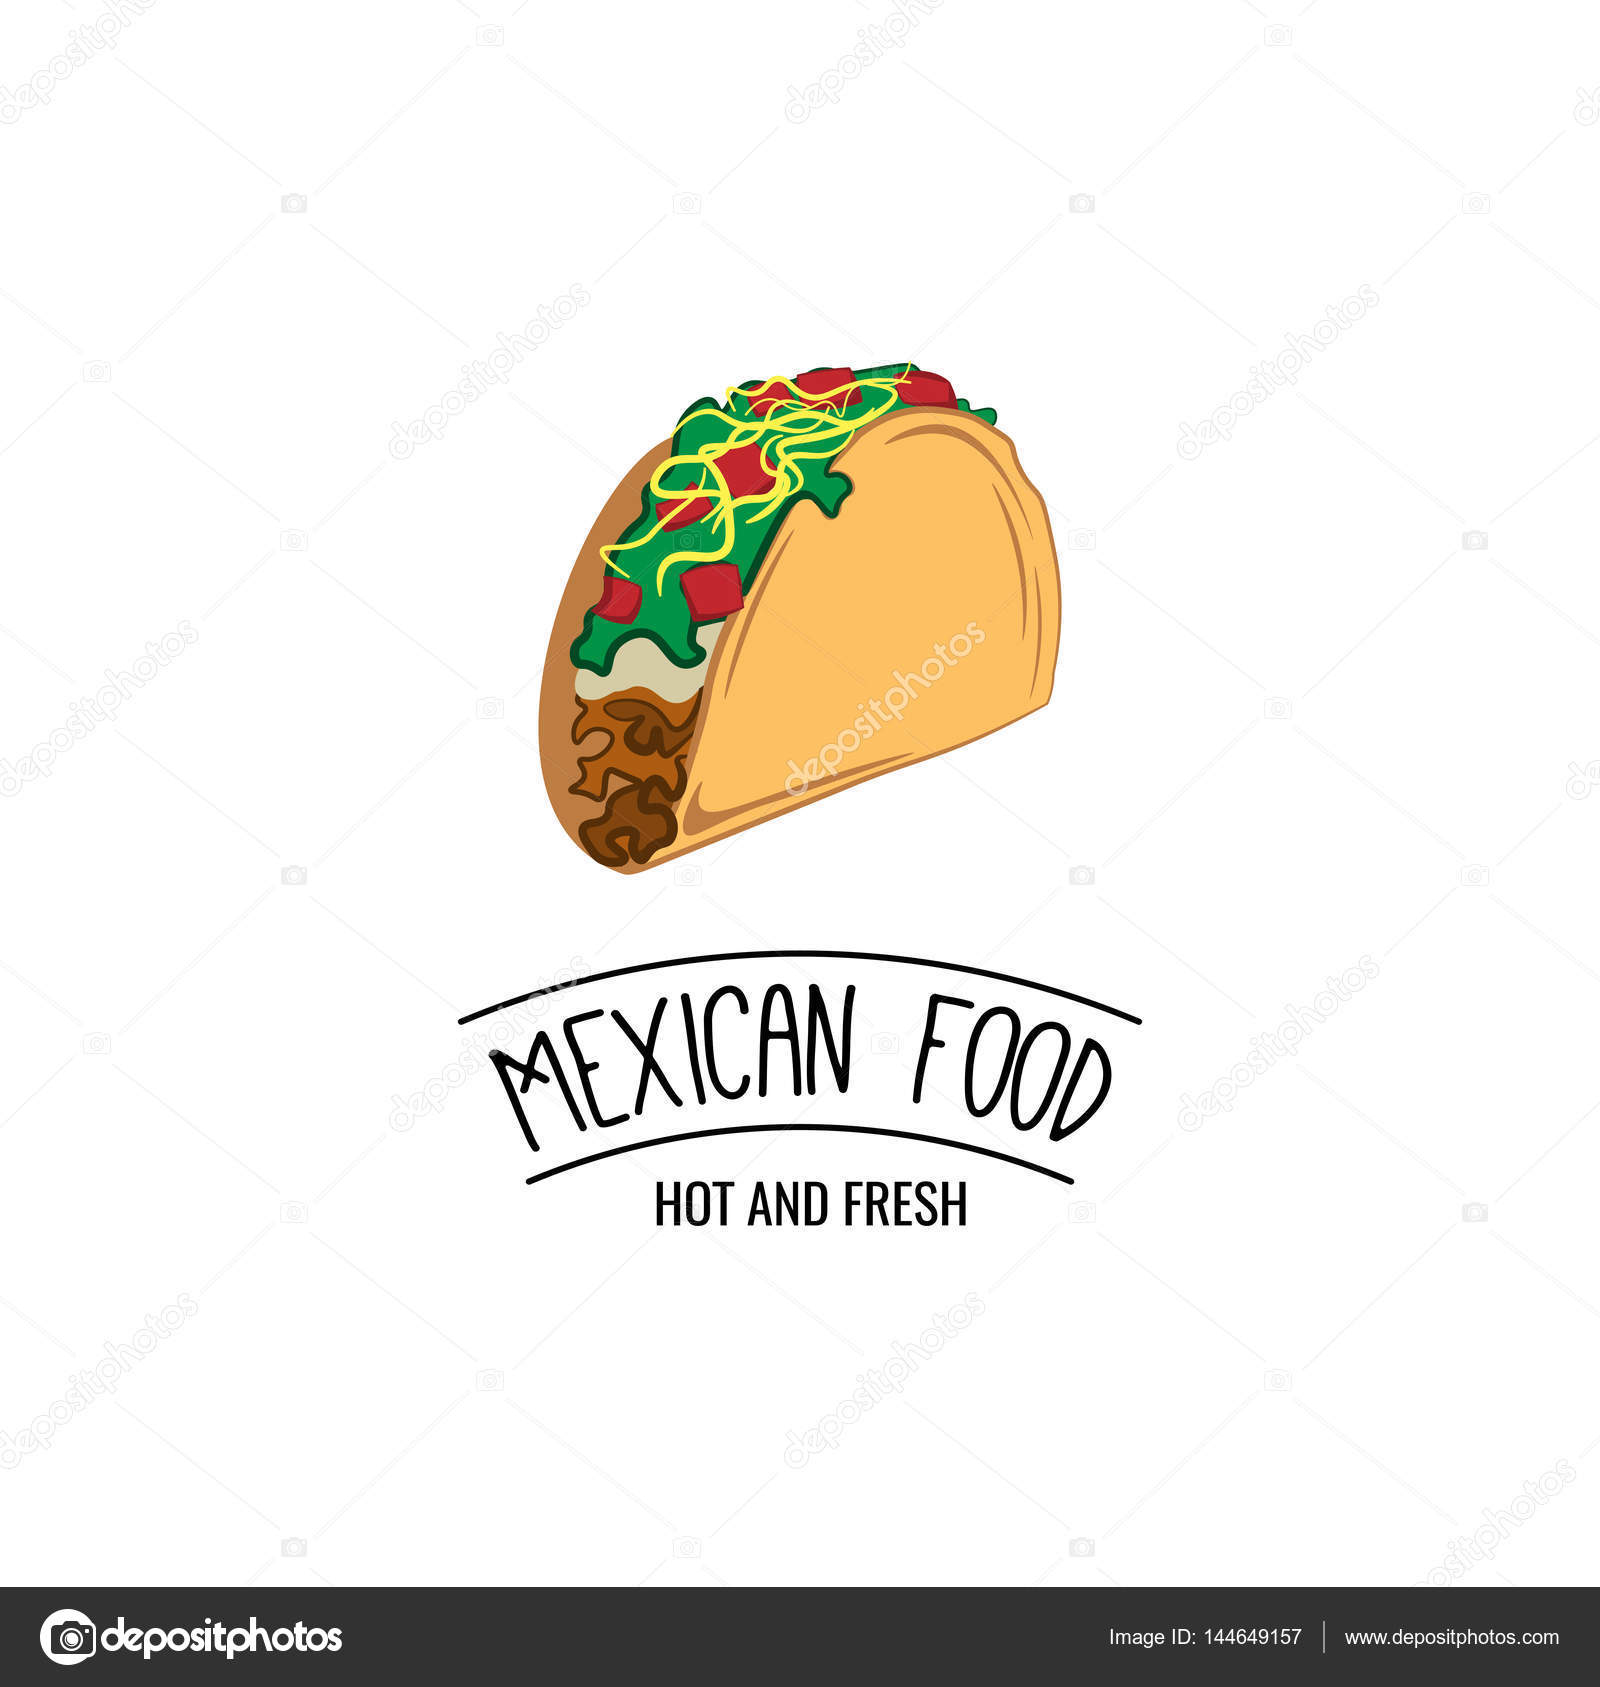 Taco Traditional mexican food Label template or concept Can be